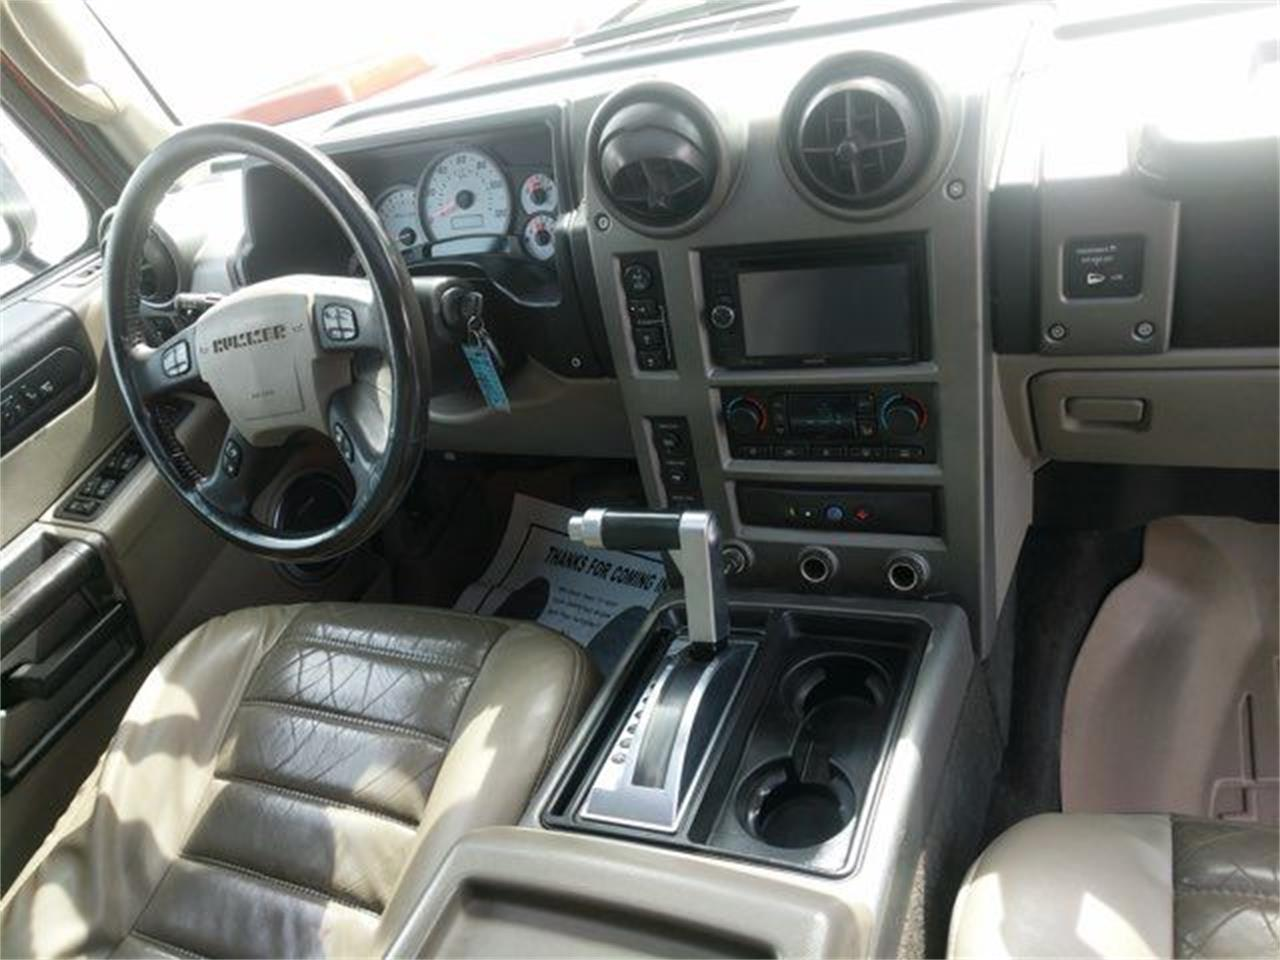 2003 Hummer H2 for sale in Hope Mills, NC – photo 27